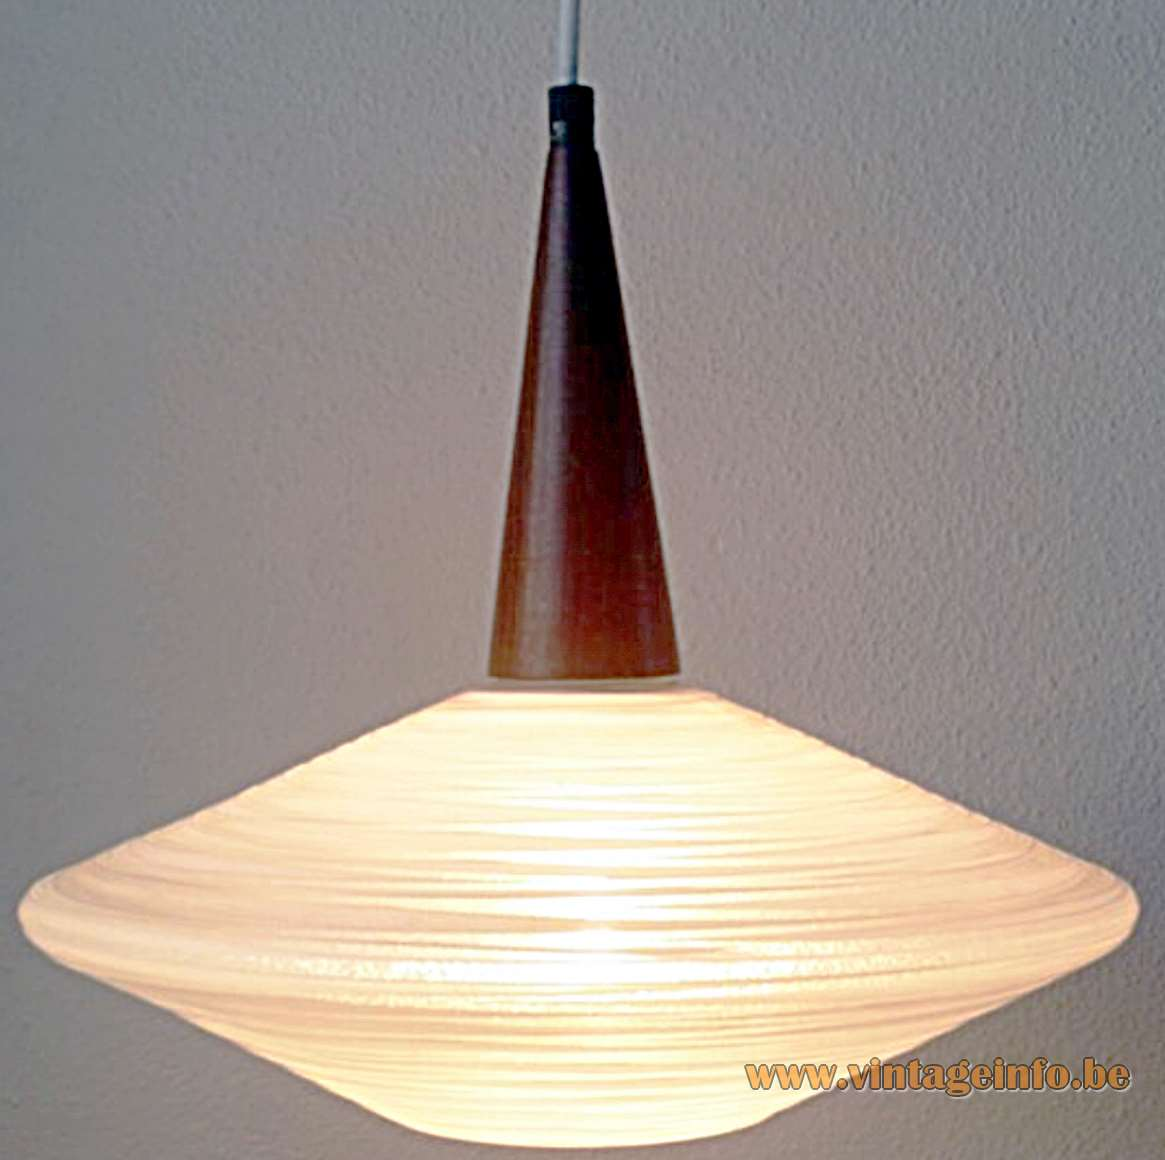 Philips Opal Pendant Light - Philips Pendant Light NG 74-30